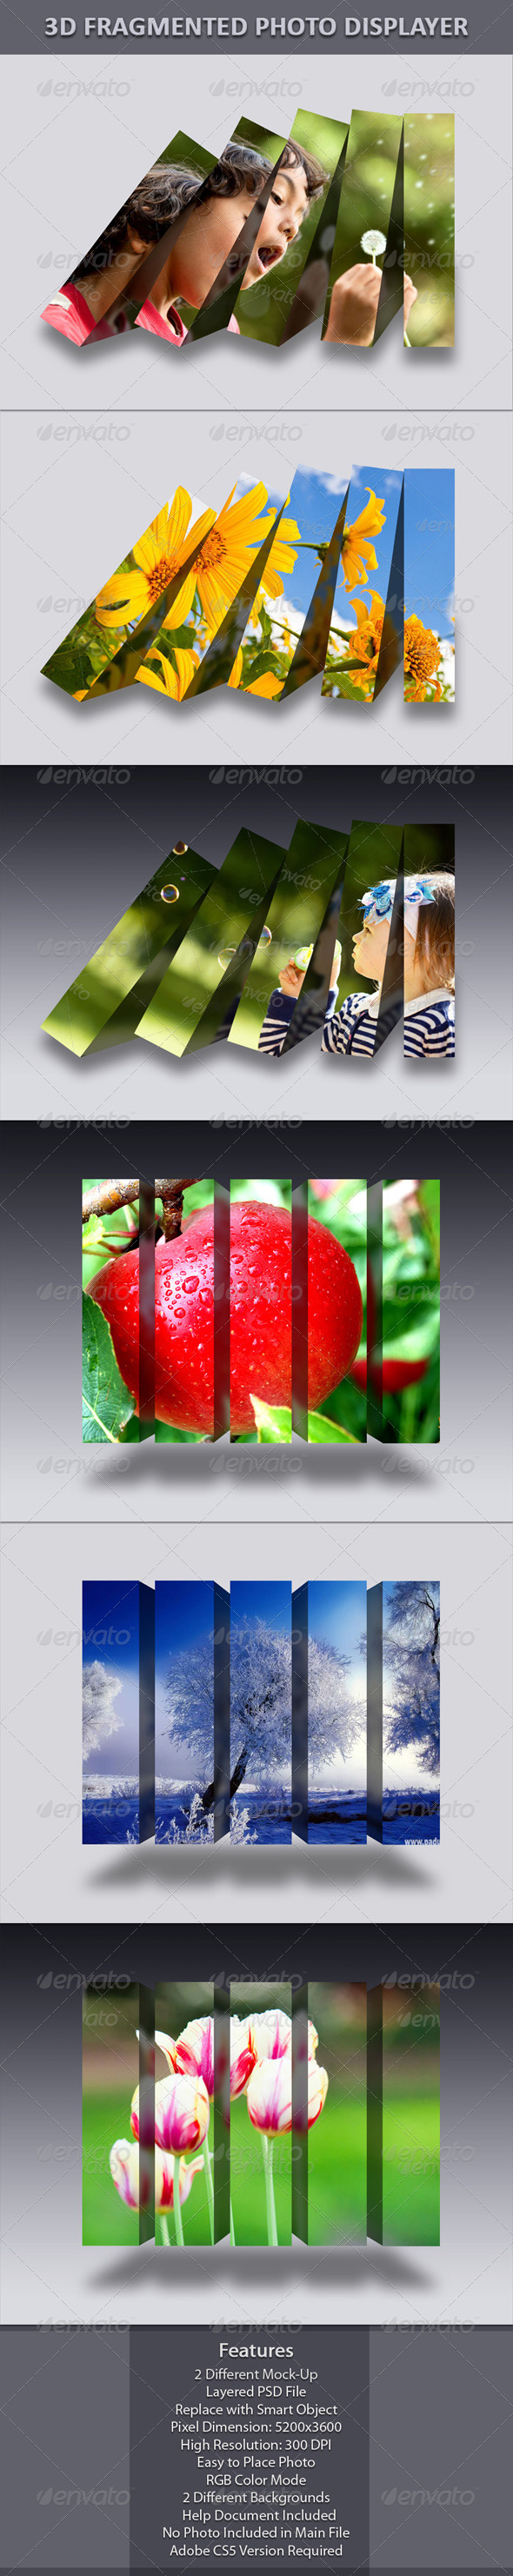 3D Fragmented Photo Displayer - Miscellaneous Photo Templates